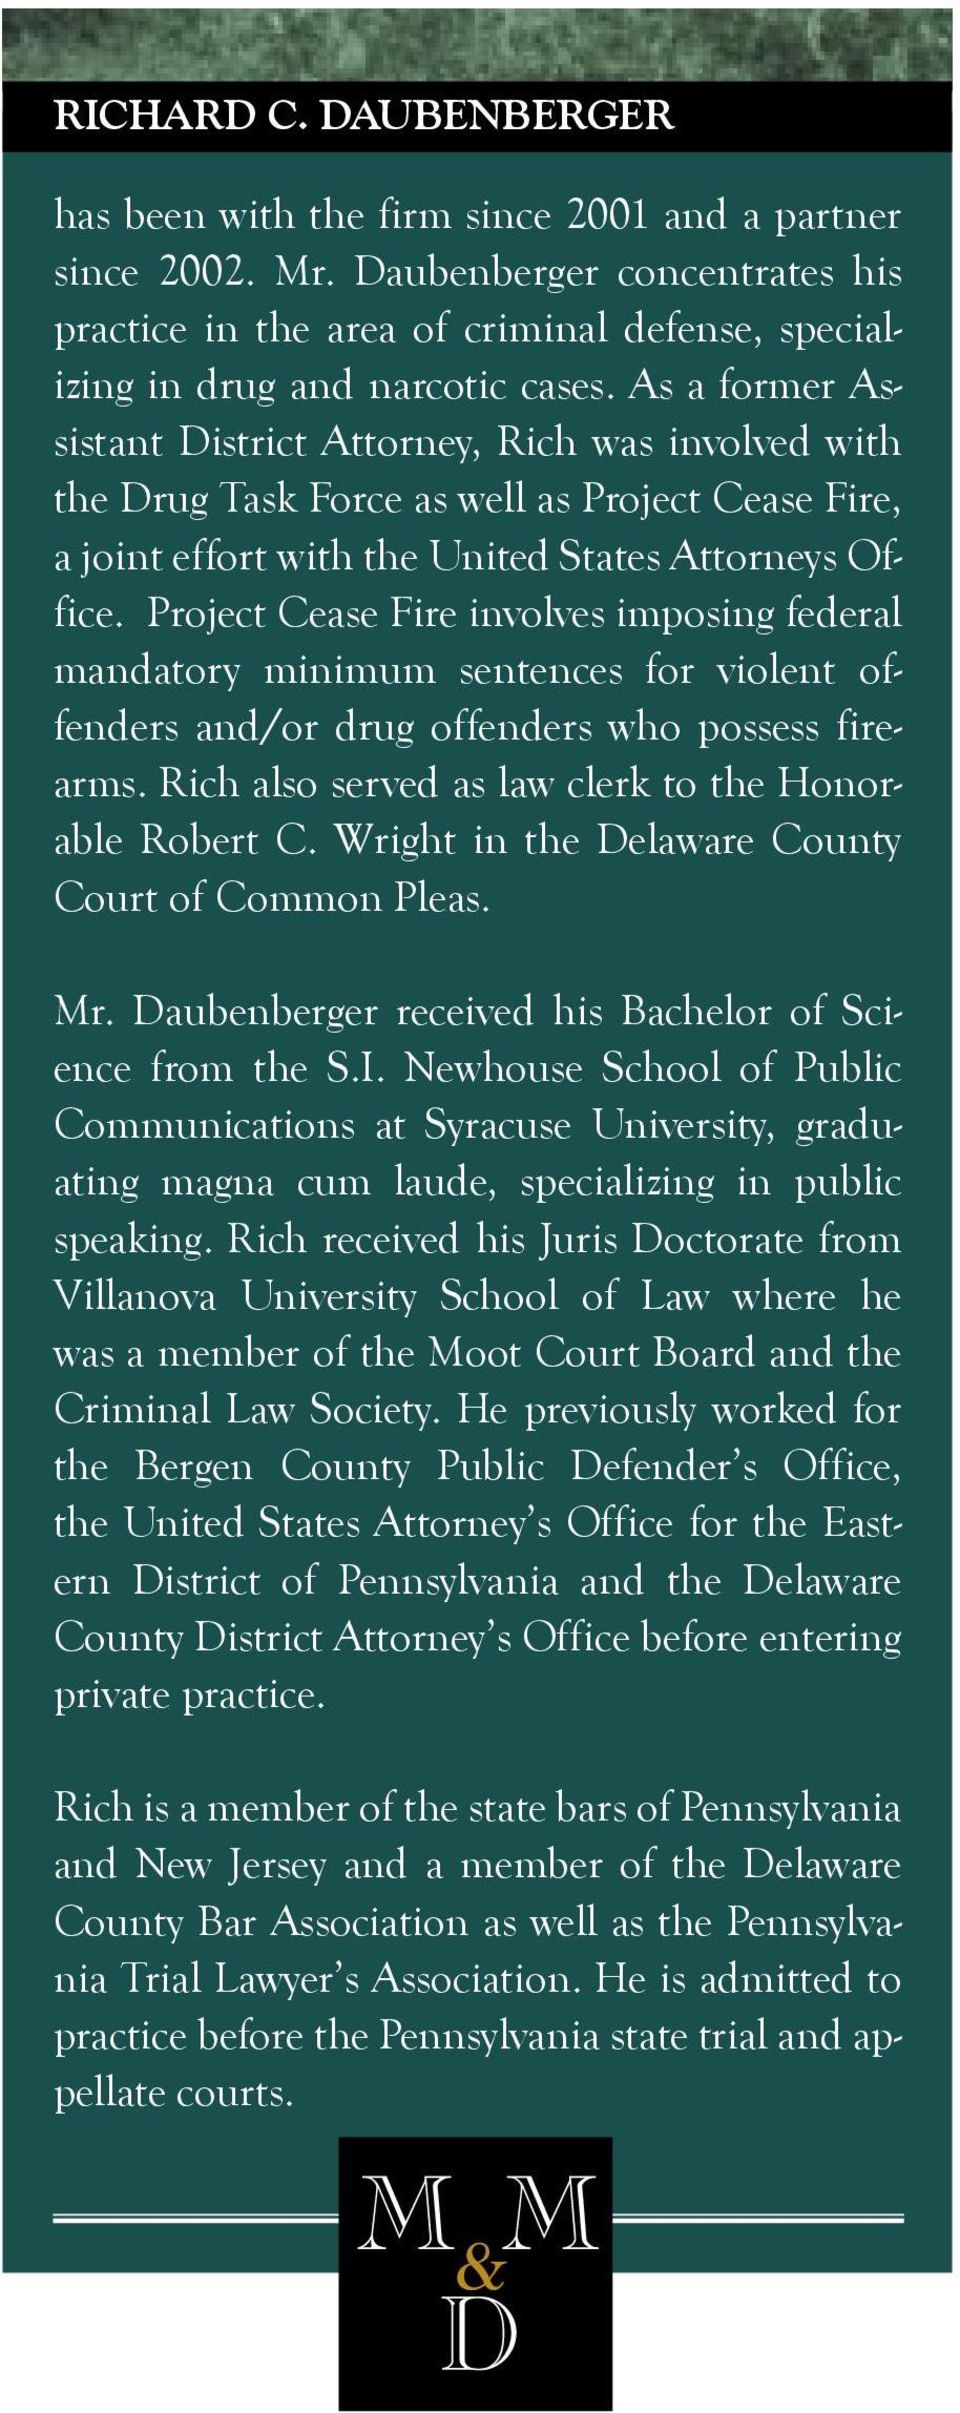 Project Cease Fire involves imposing federal mandatory minimum sentences for violent offenders and/or drug offenders who possess firearms. Rich also served as law clerk to the Honorable Robert C.